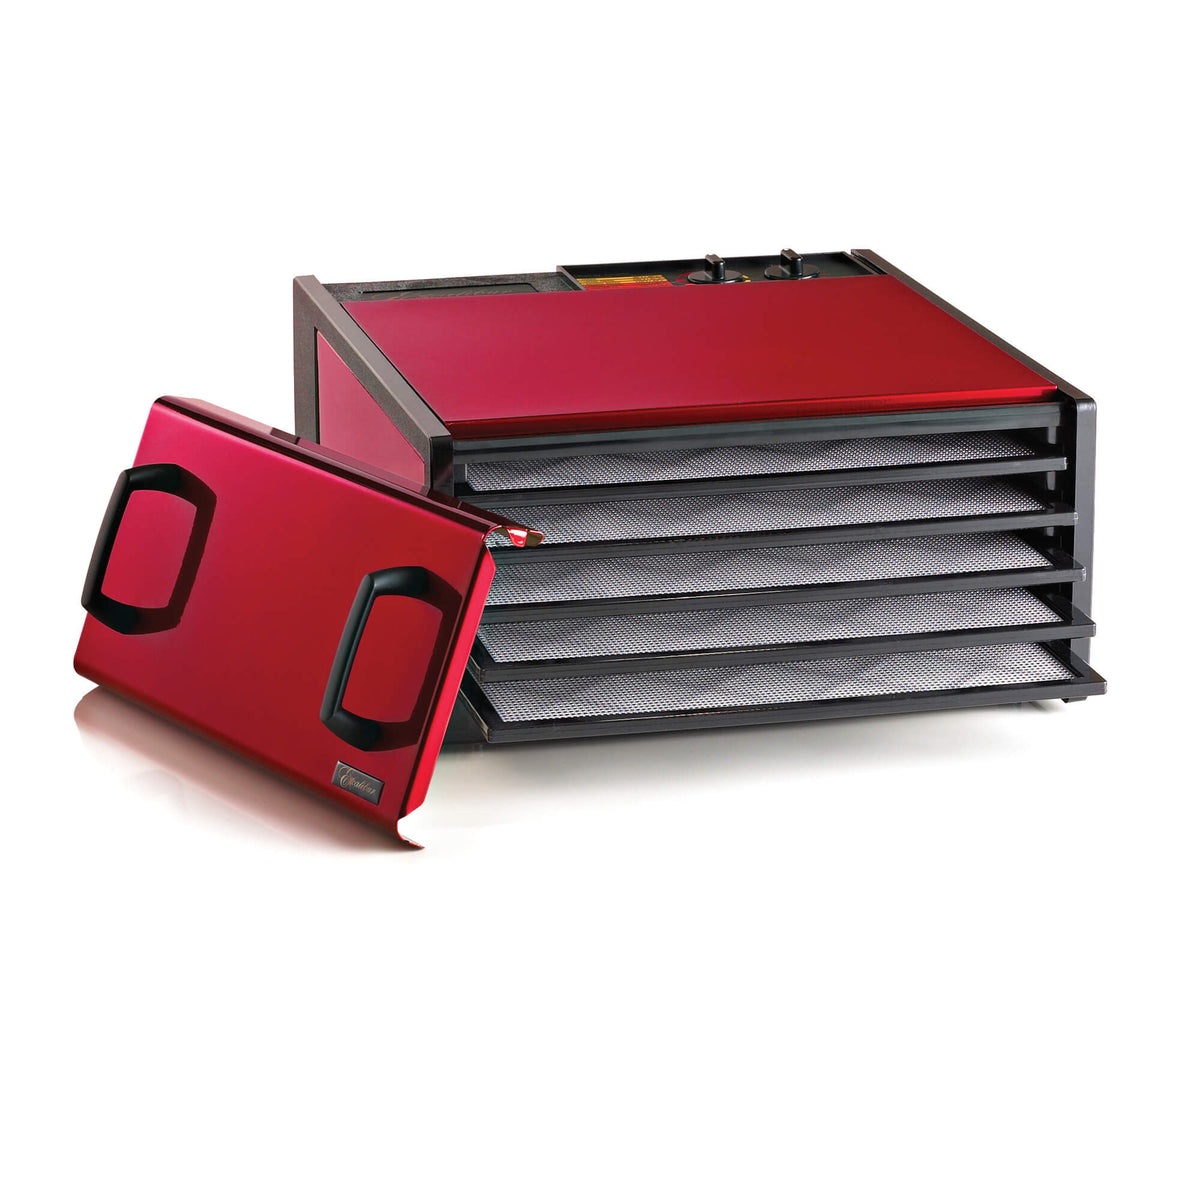 Excalibur D502RC Radiant Cherry 5 tray stainless steel dehydrator with door propped to the side and trays pulled out.